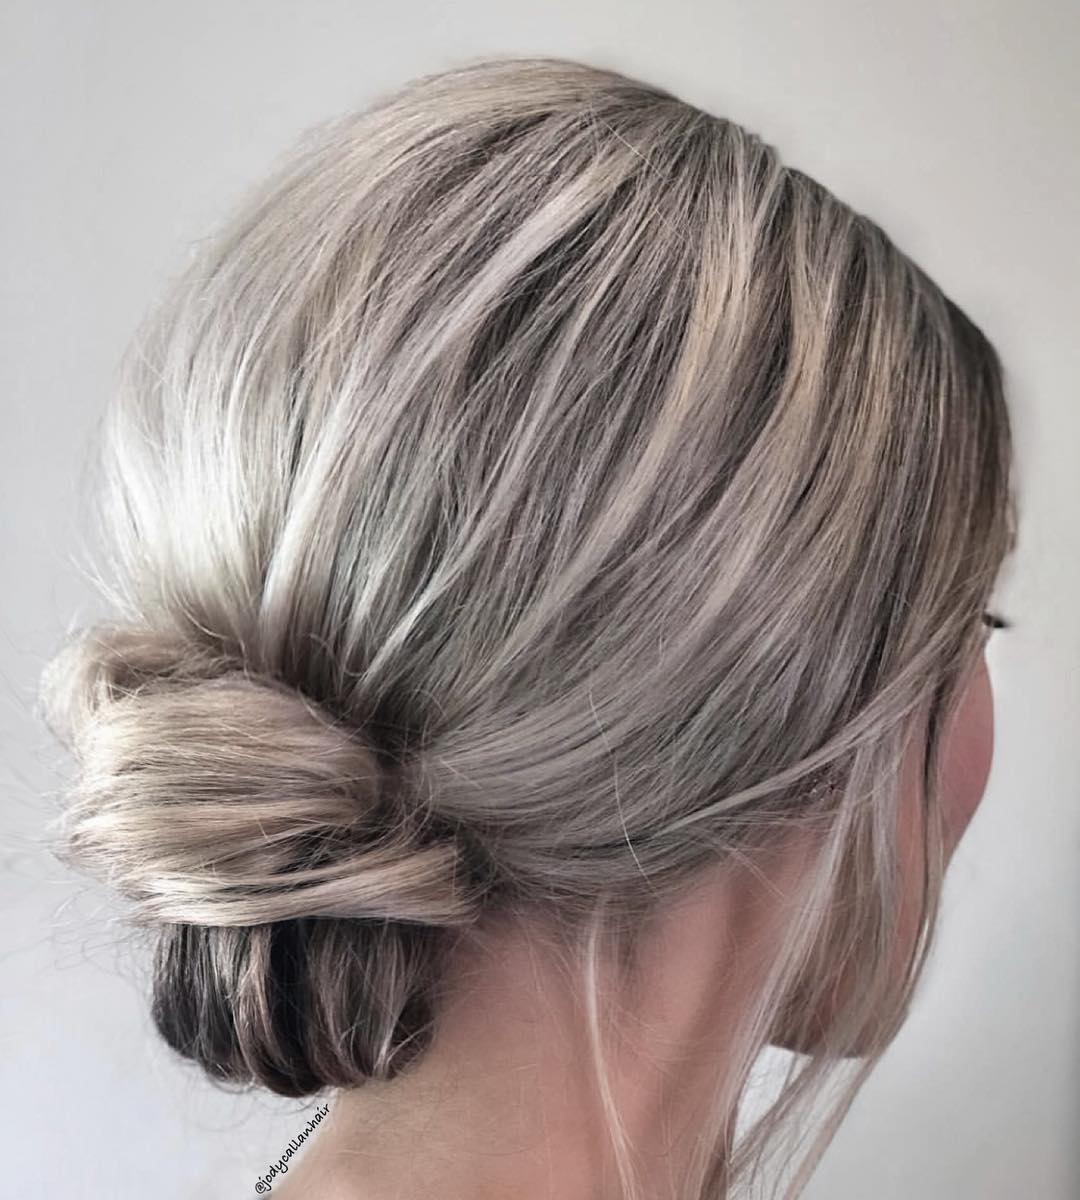 Classy Low Knot Updo